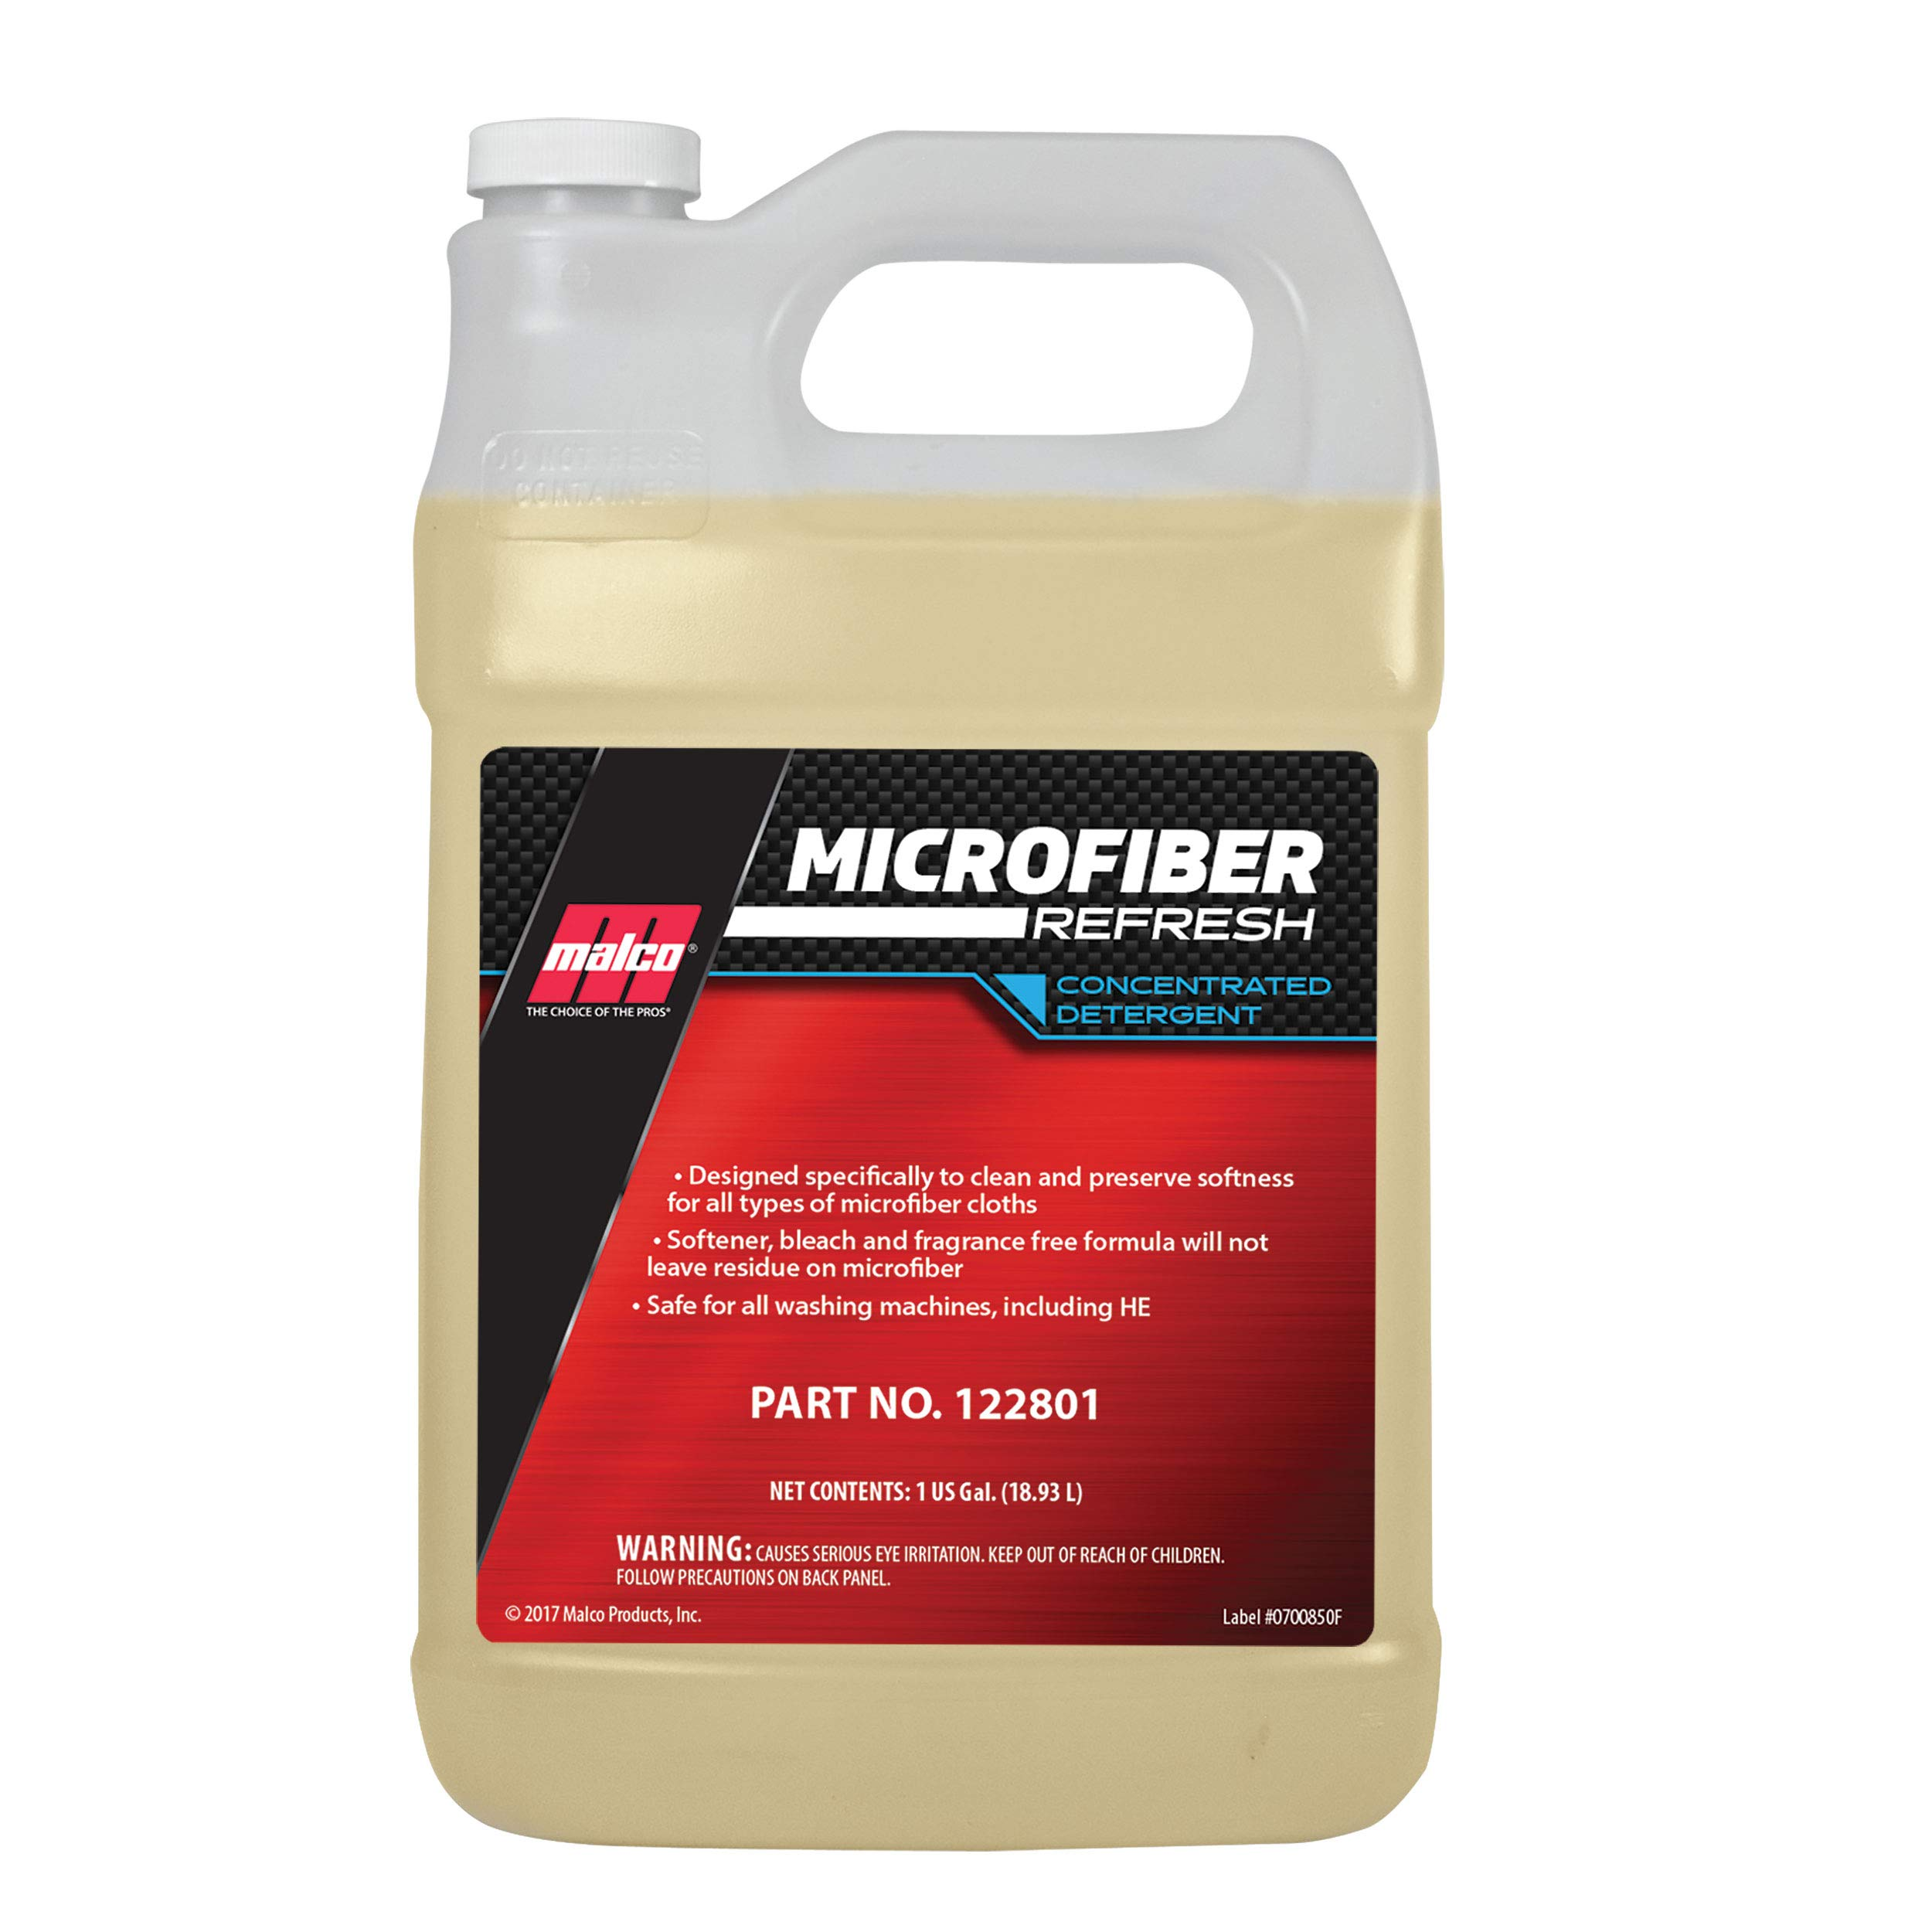 MALCO MICROFIBER REFRESH CONCENTRATED DETERGENT (1 Gallon) - 122801